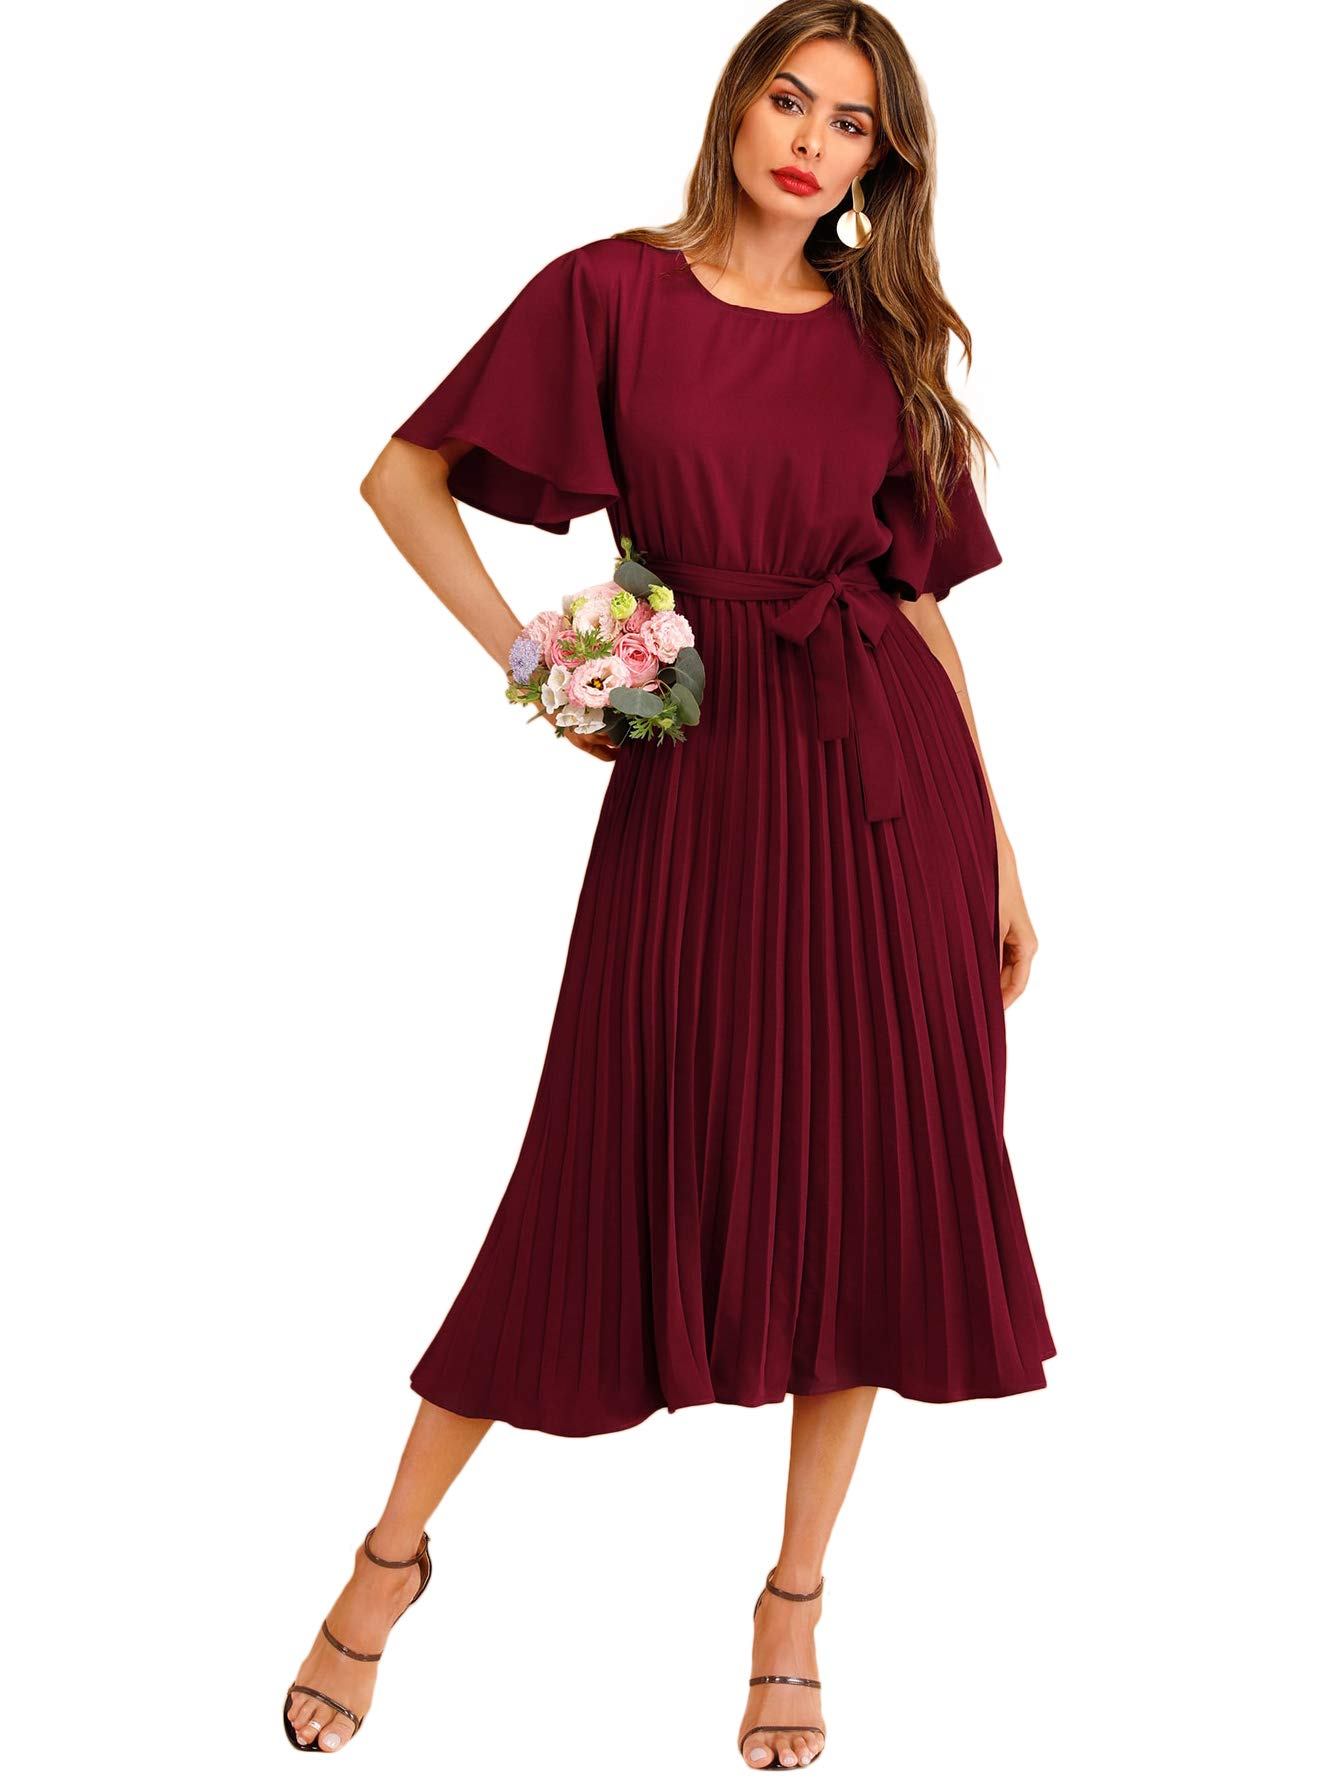 Wedding Guest Dresses - Women's Long Sleeve Velvet Bodycon Wrap Dress For Wedding Guest